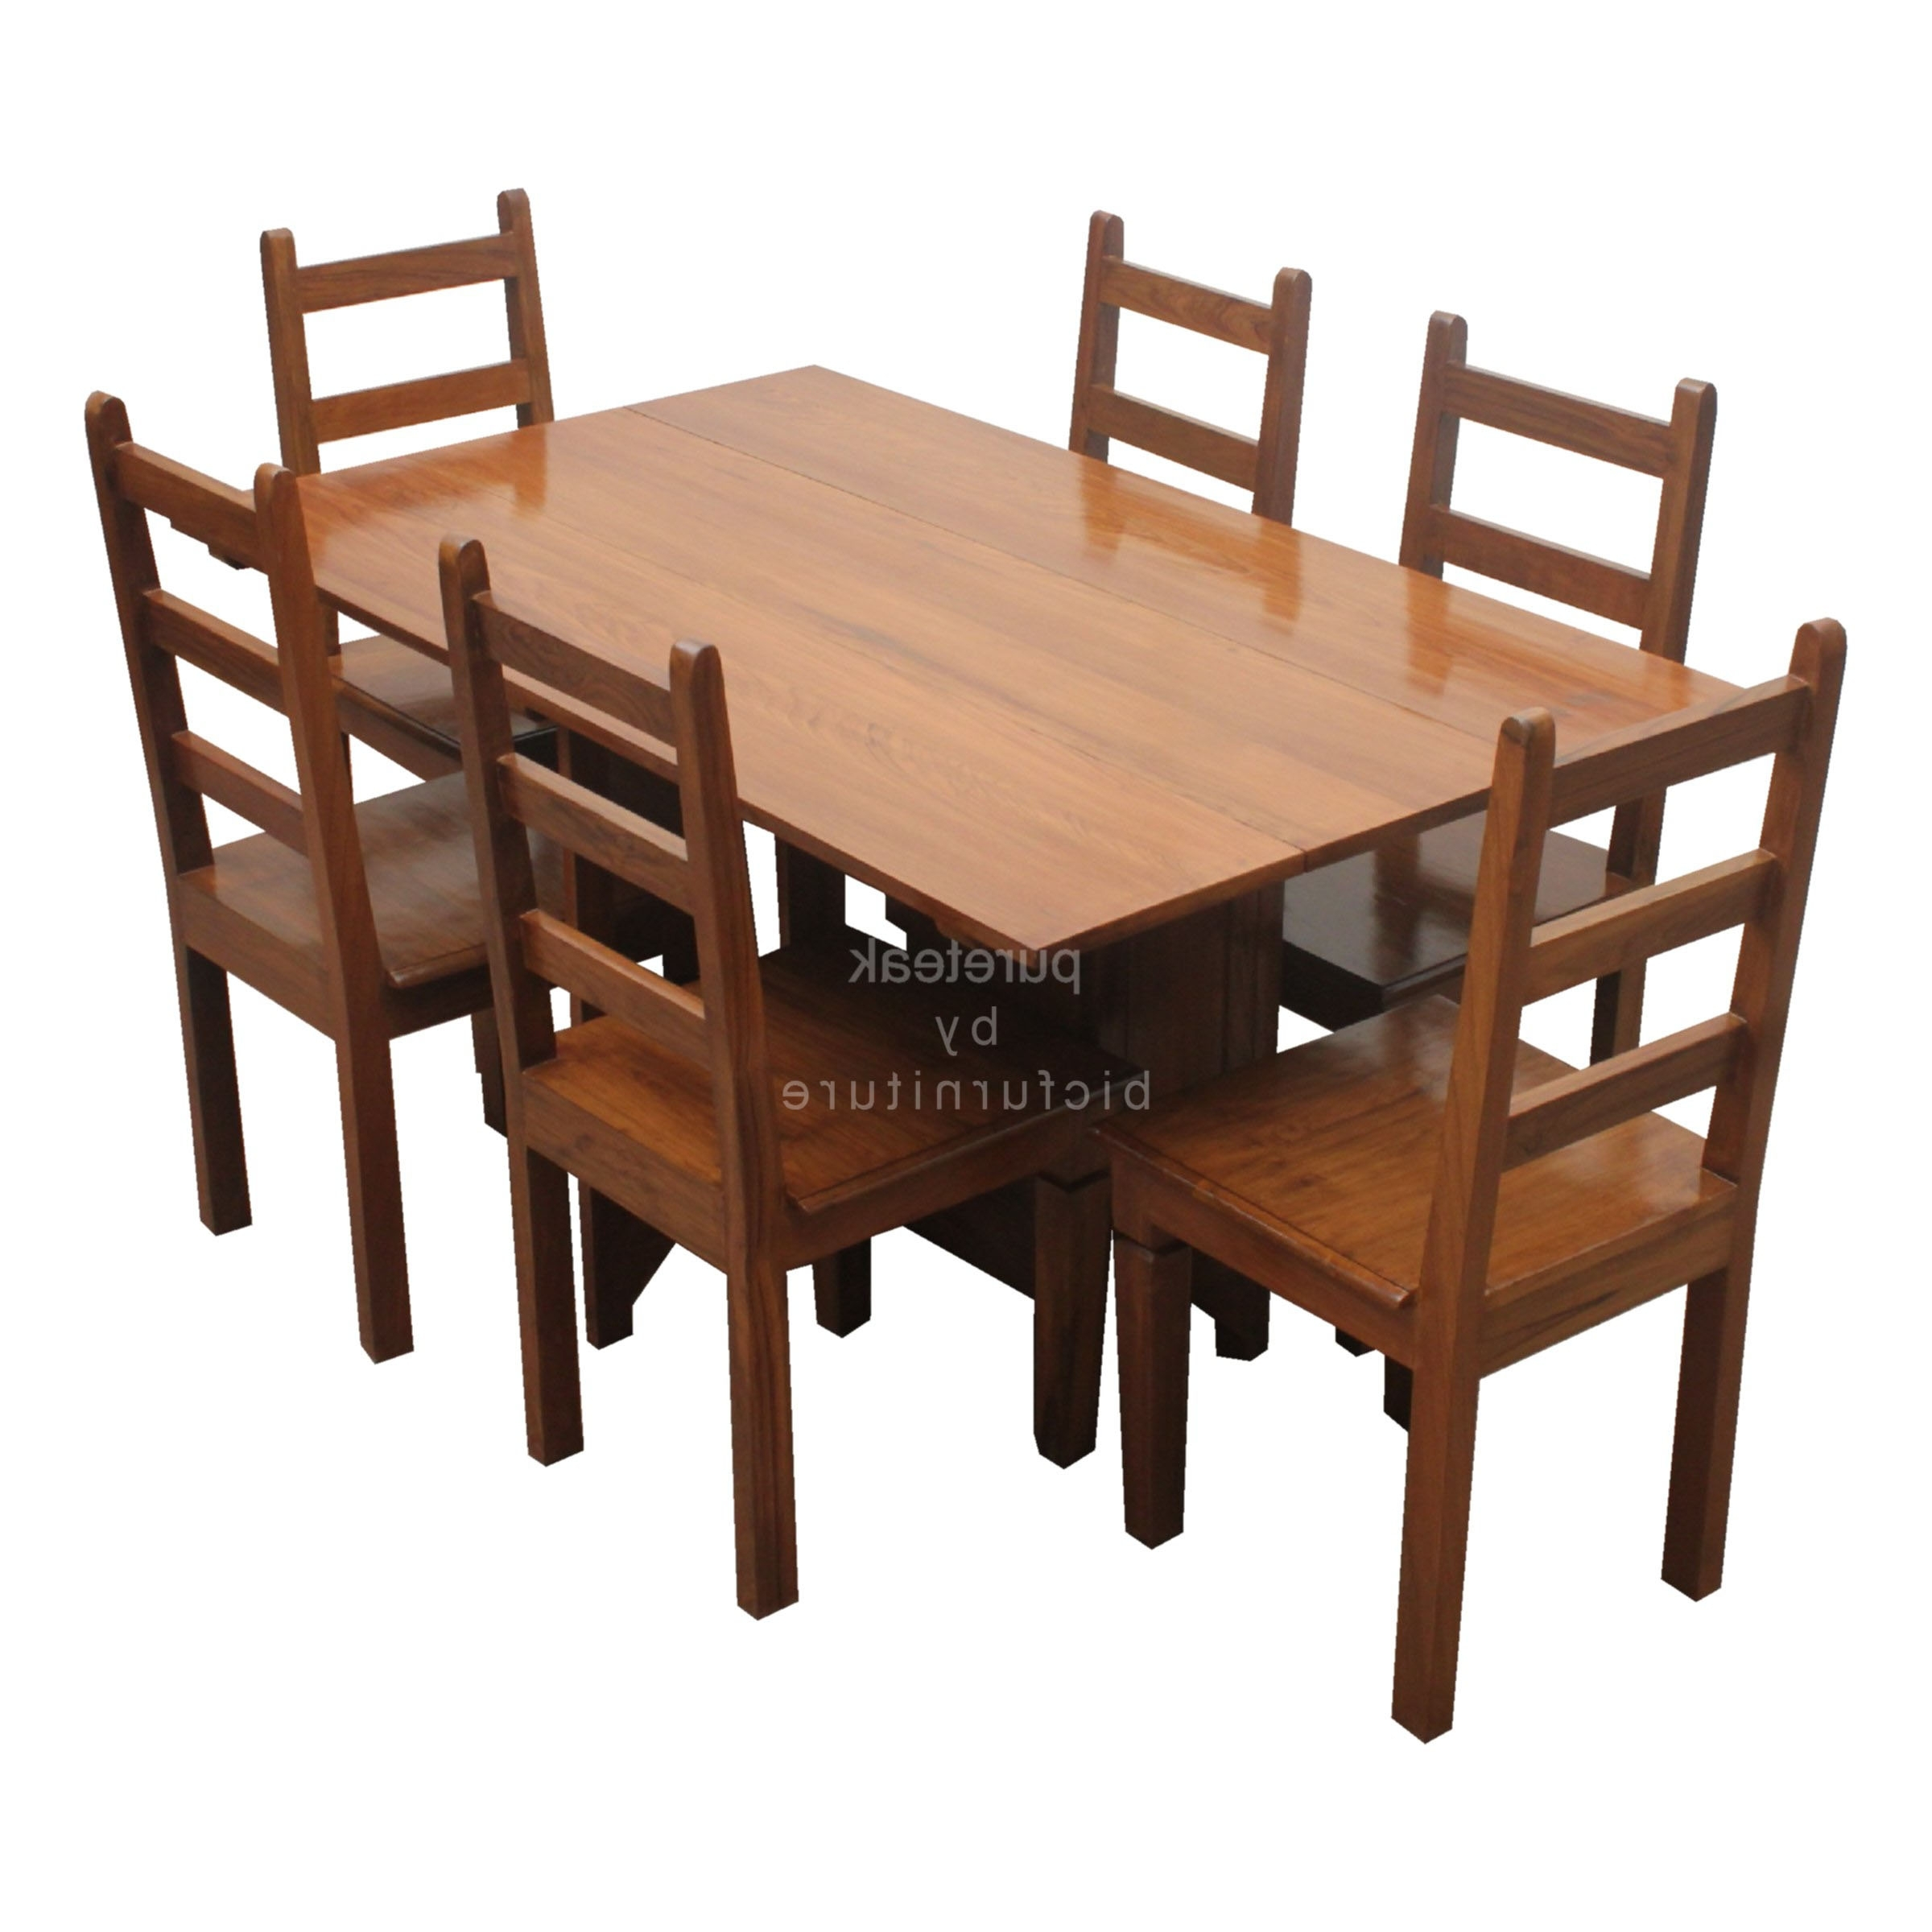 Indian Wood Dining Tables Regarding Most Popular Six Seater Dinning Table Set In Teak Wood (Twd 14) Details (Gallery 3 of 25)